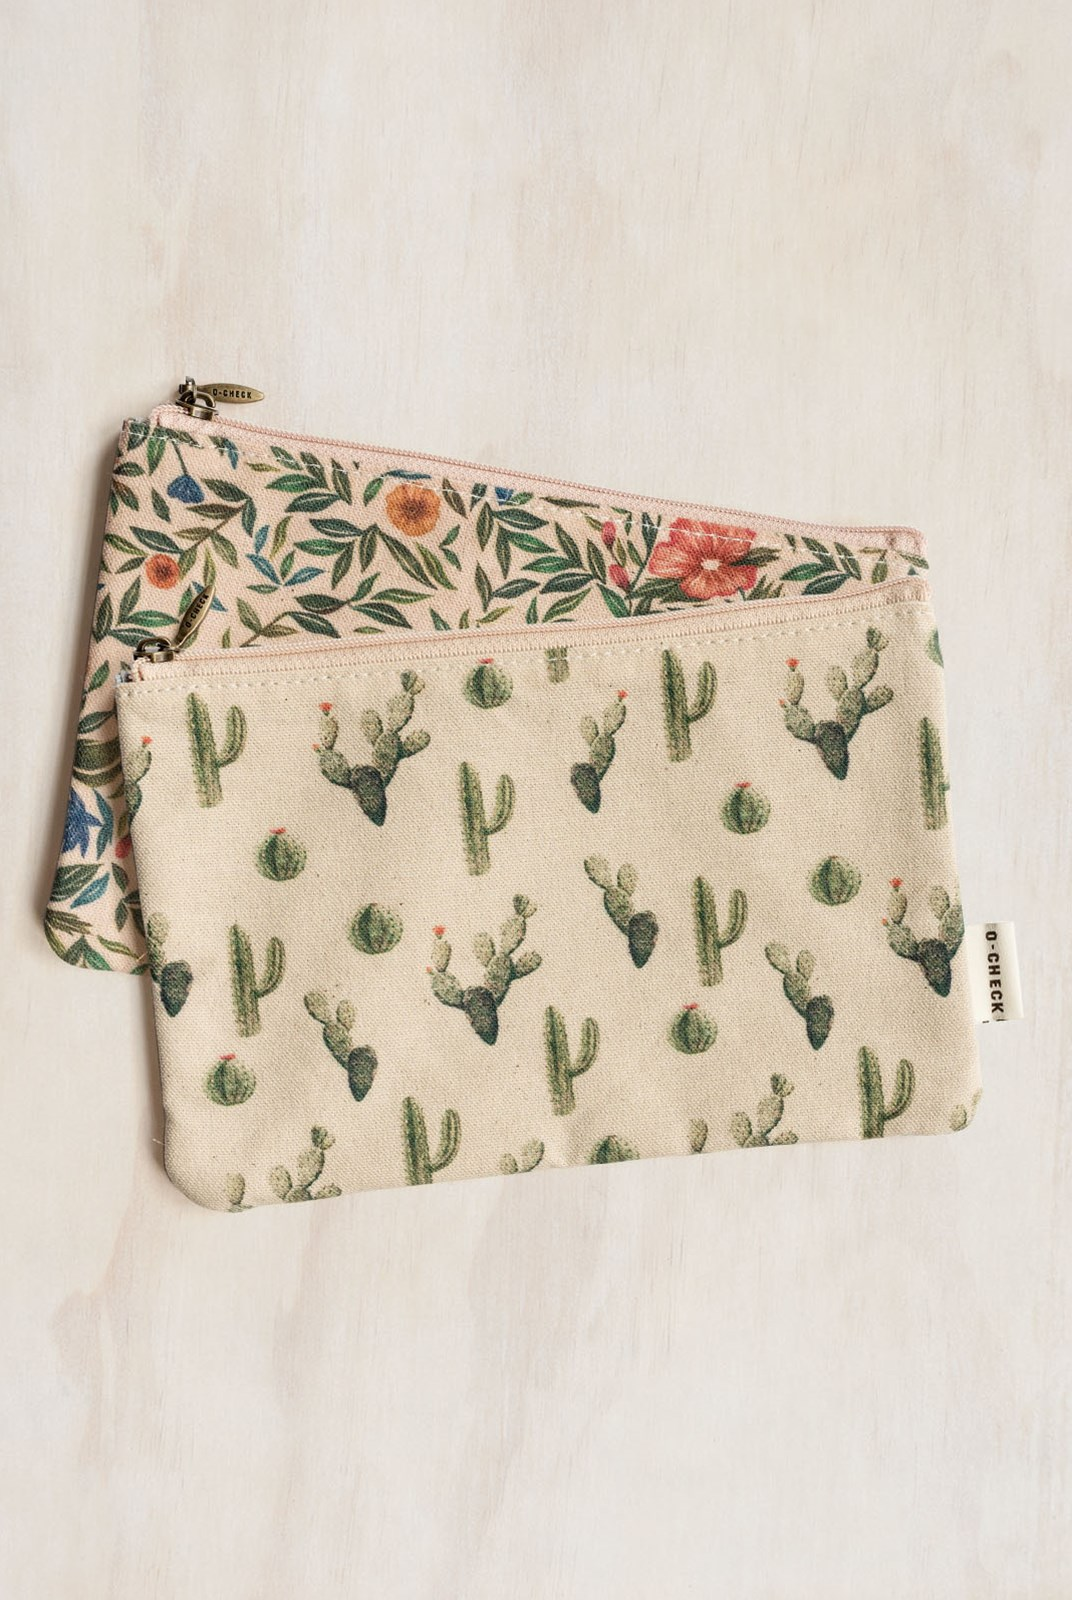 O-Check Design Graphics - Pouch - Flower